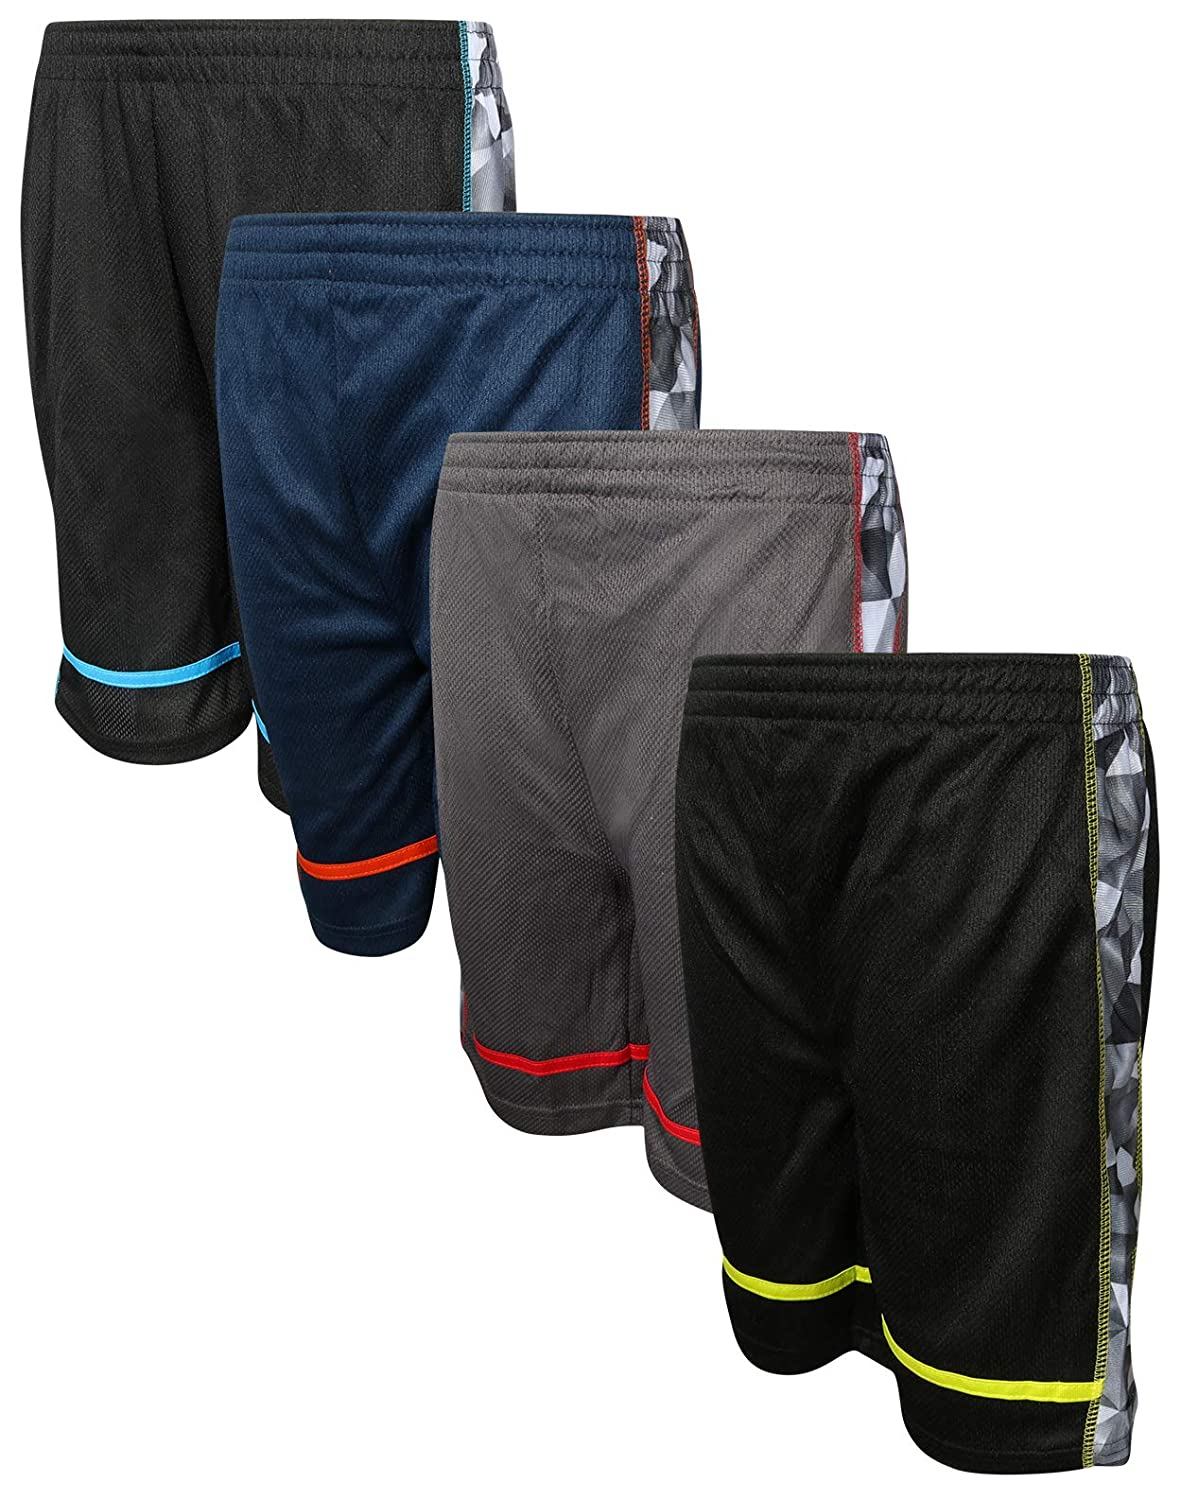 Mad Game SHORTS ボーイズ